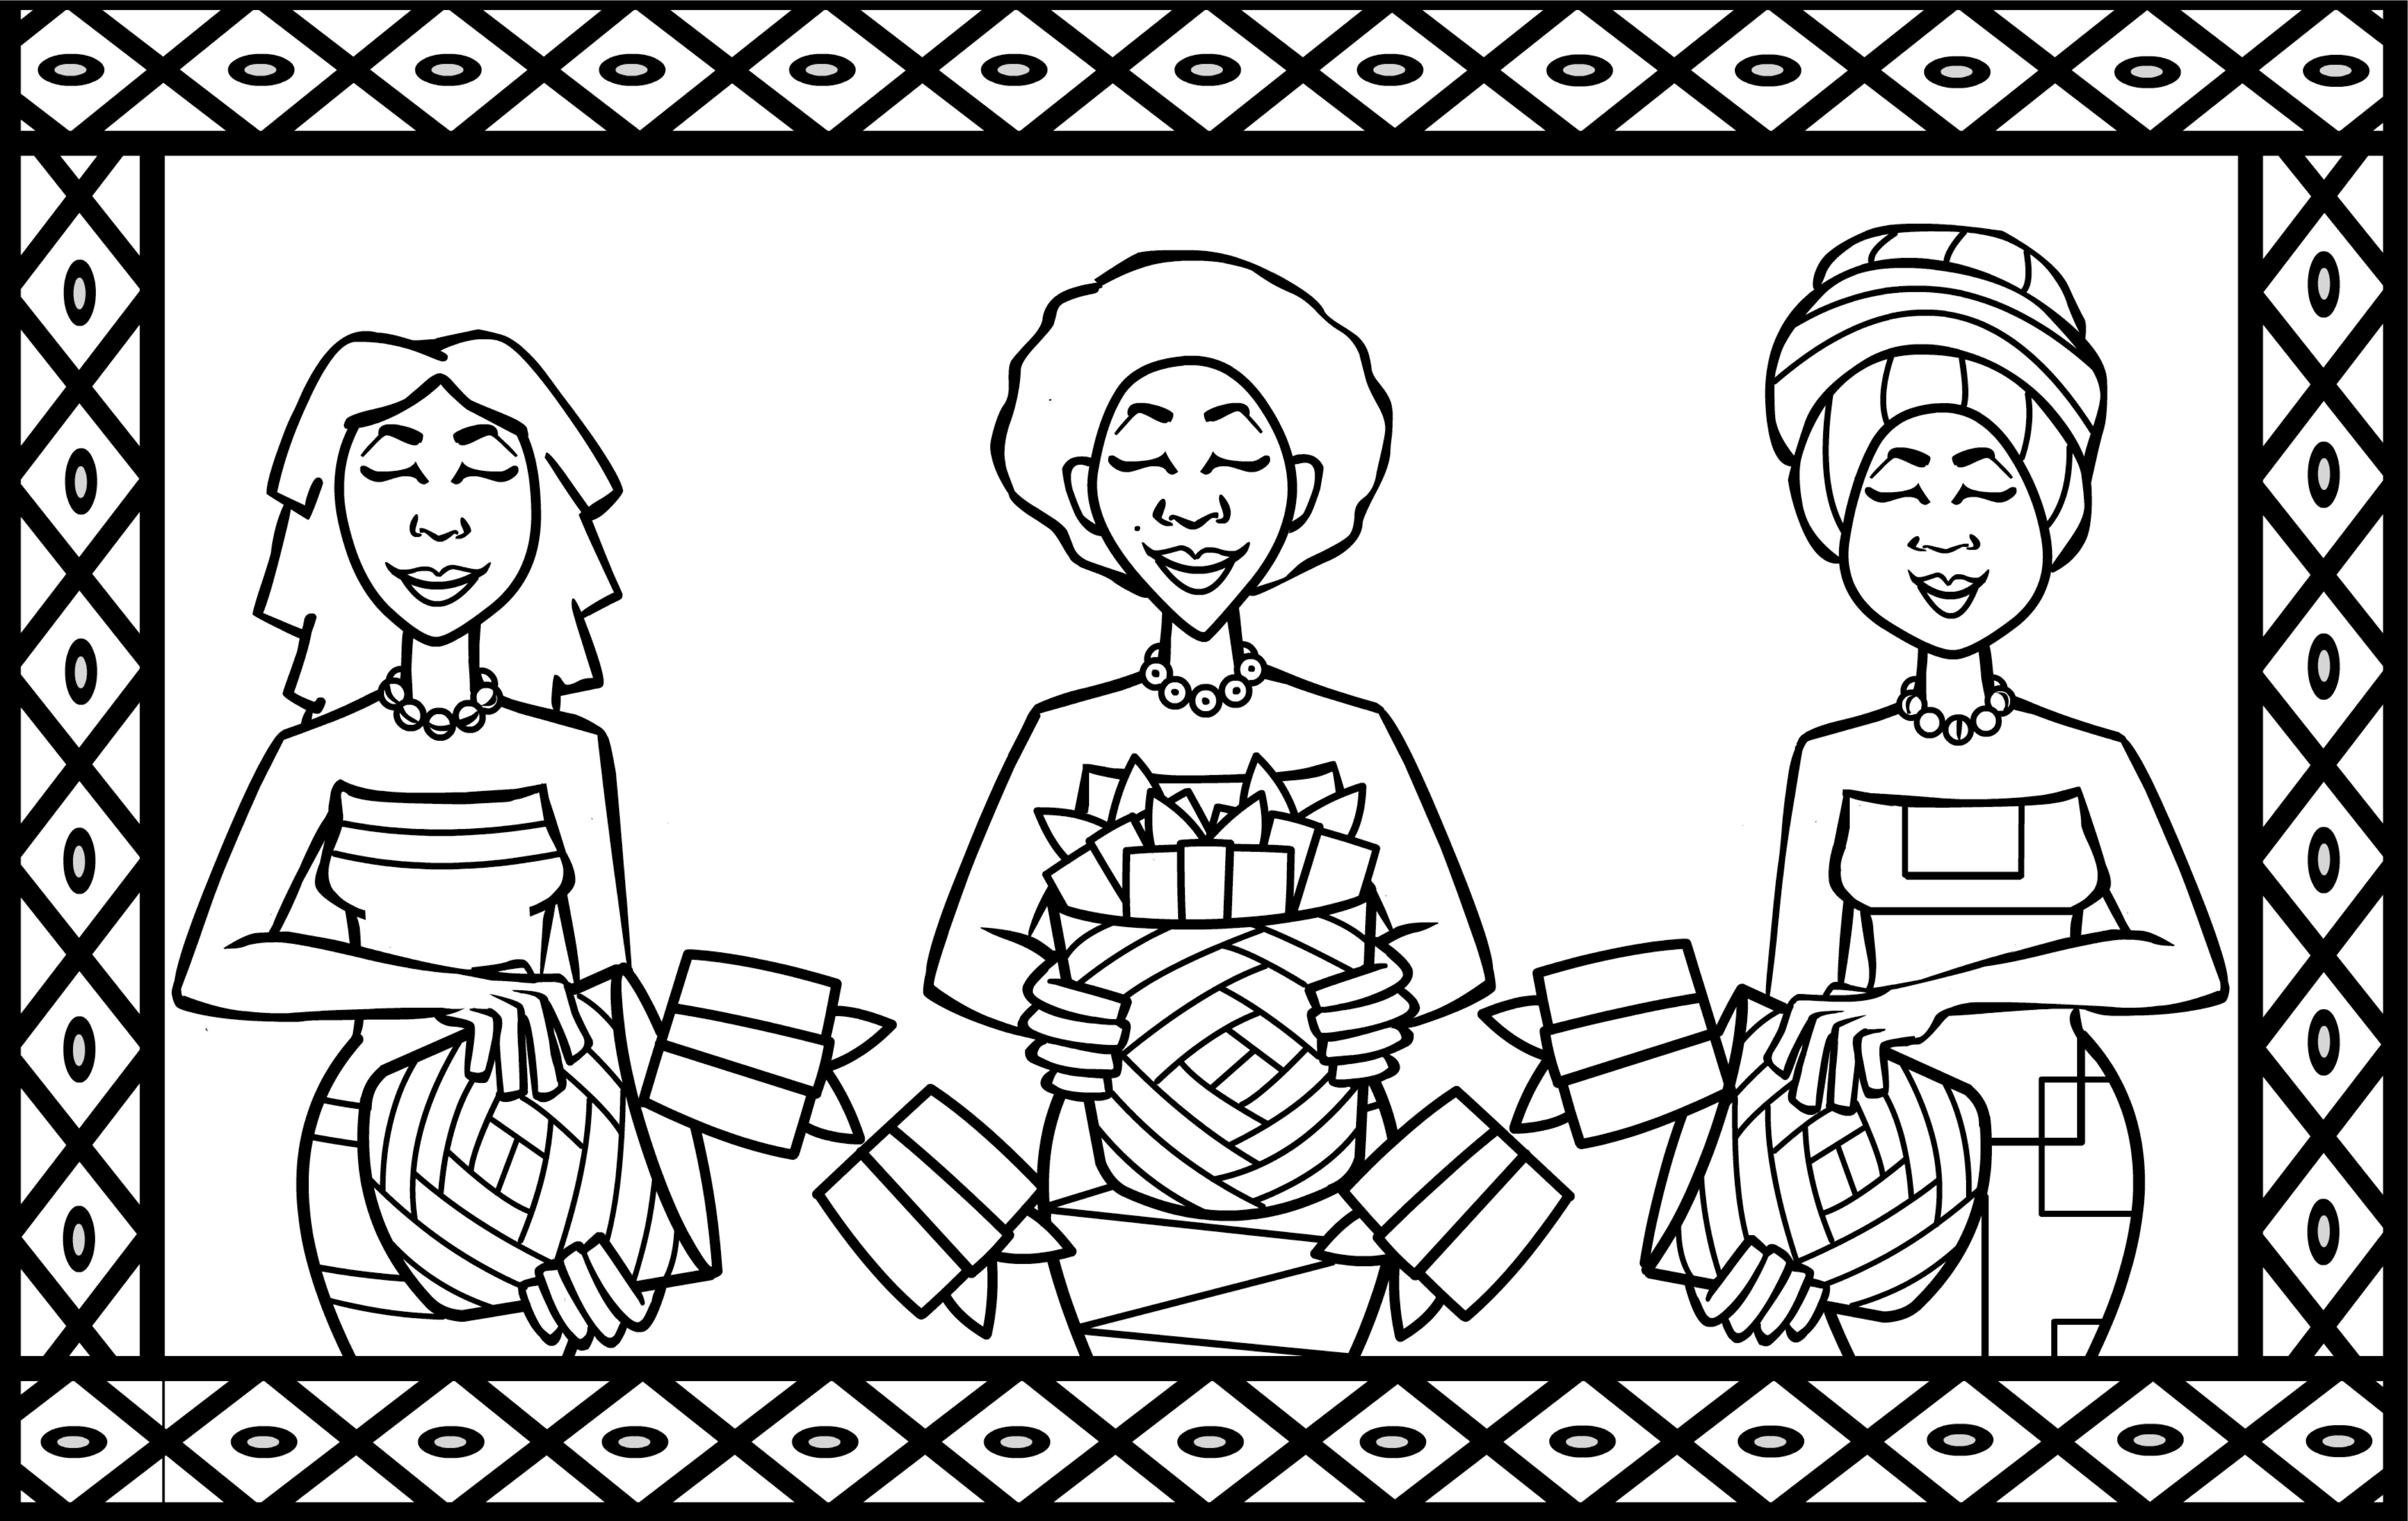 Hispanic Coloring Pages At Getdrawings Com Free For Personal Use